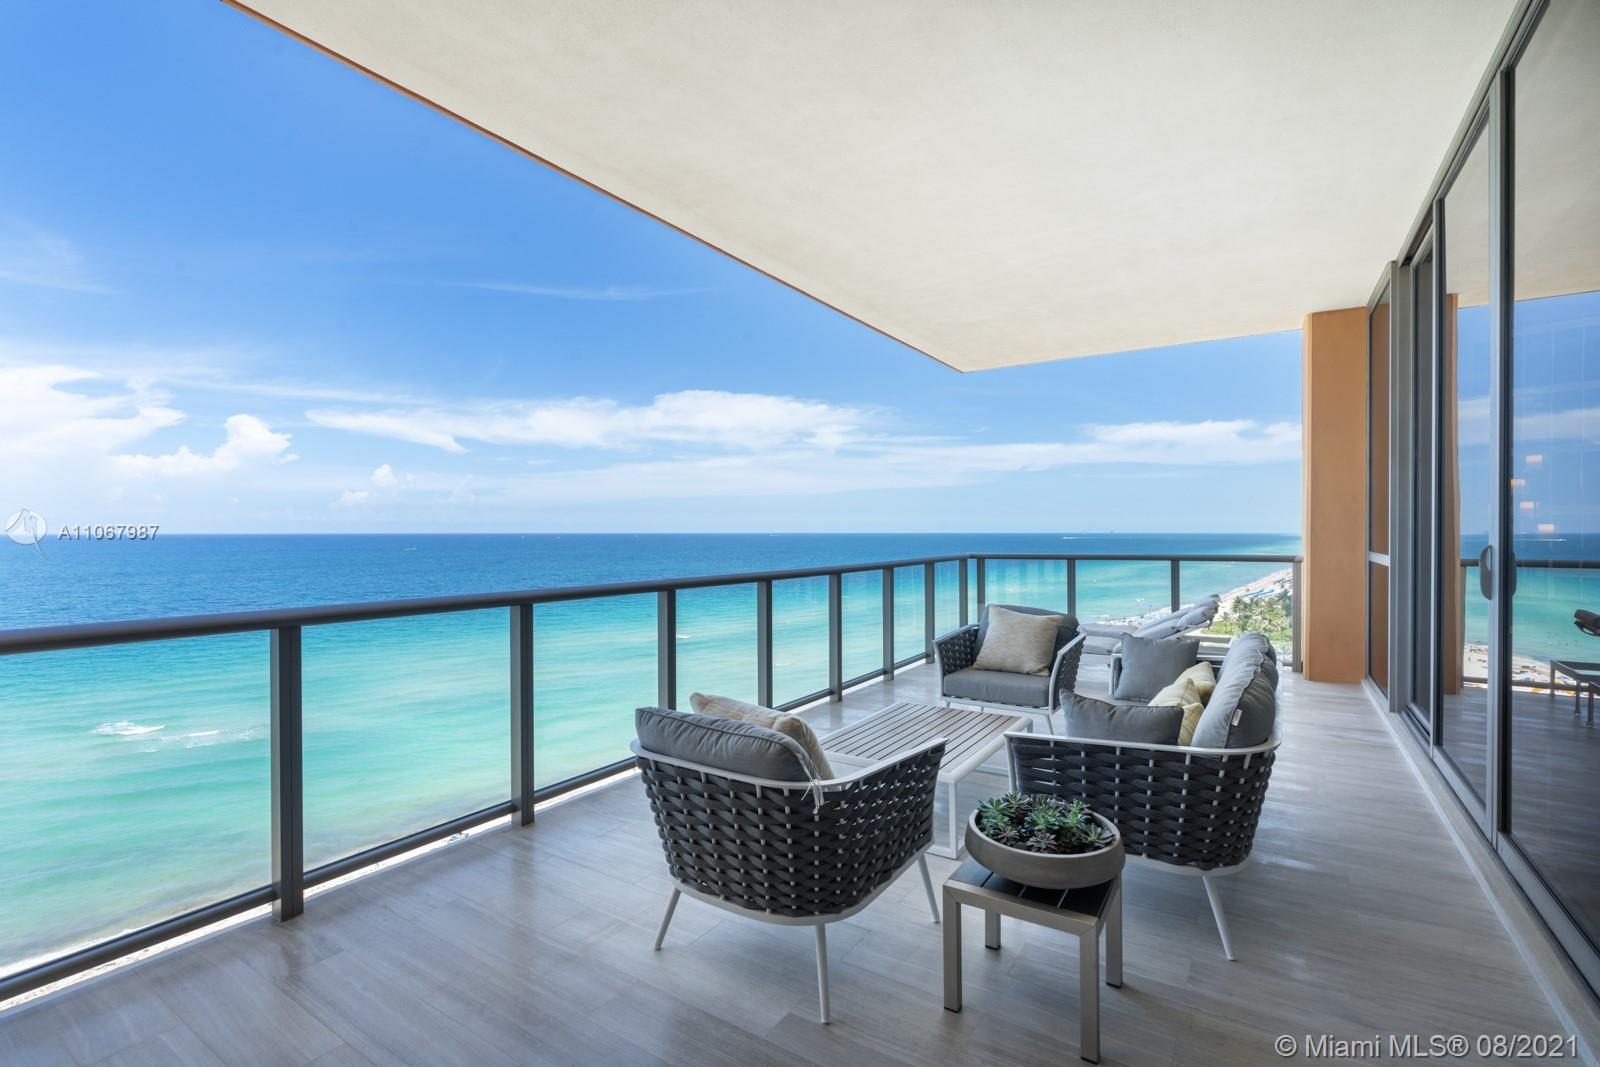 17749 Collins Ave, Unit #1002 Luxury Real Estate